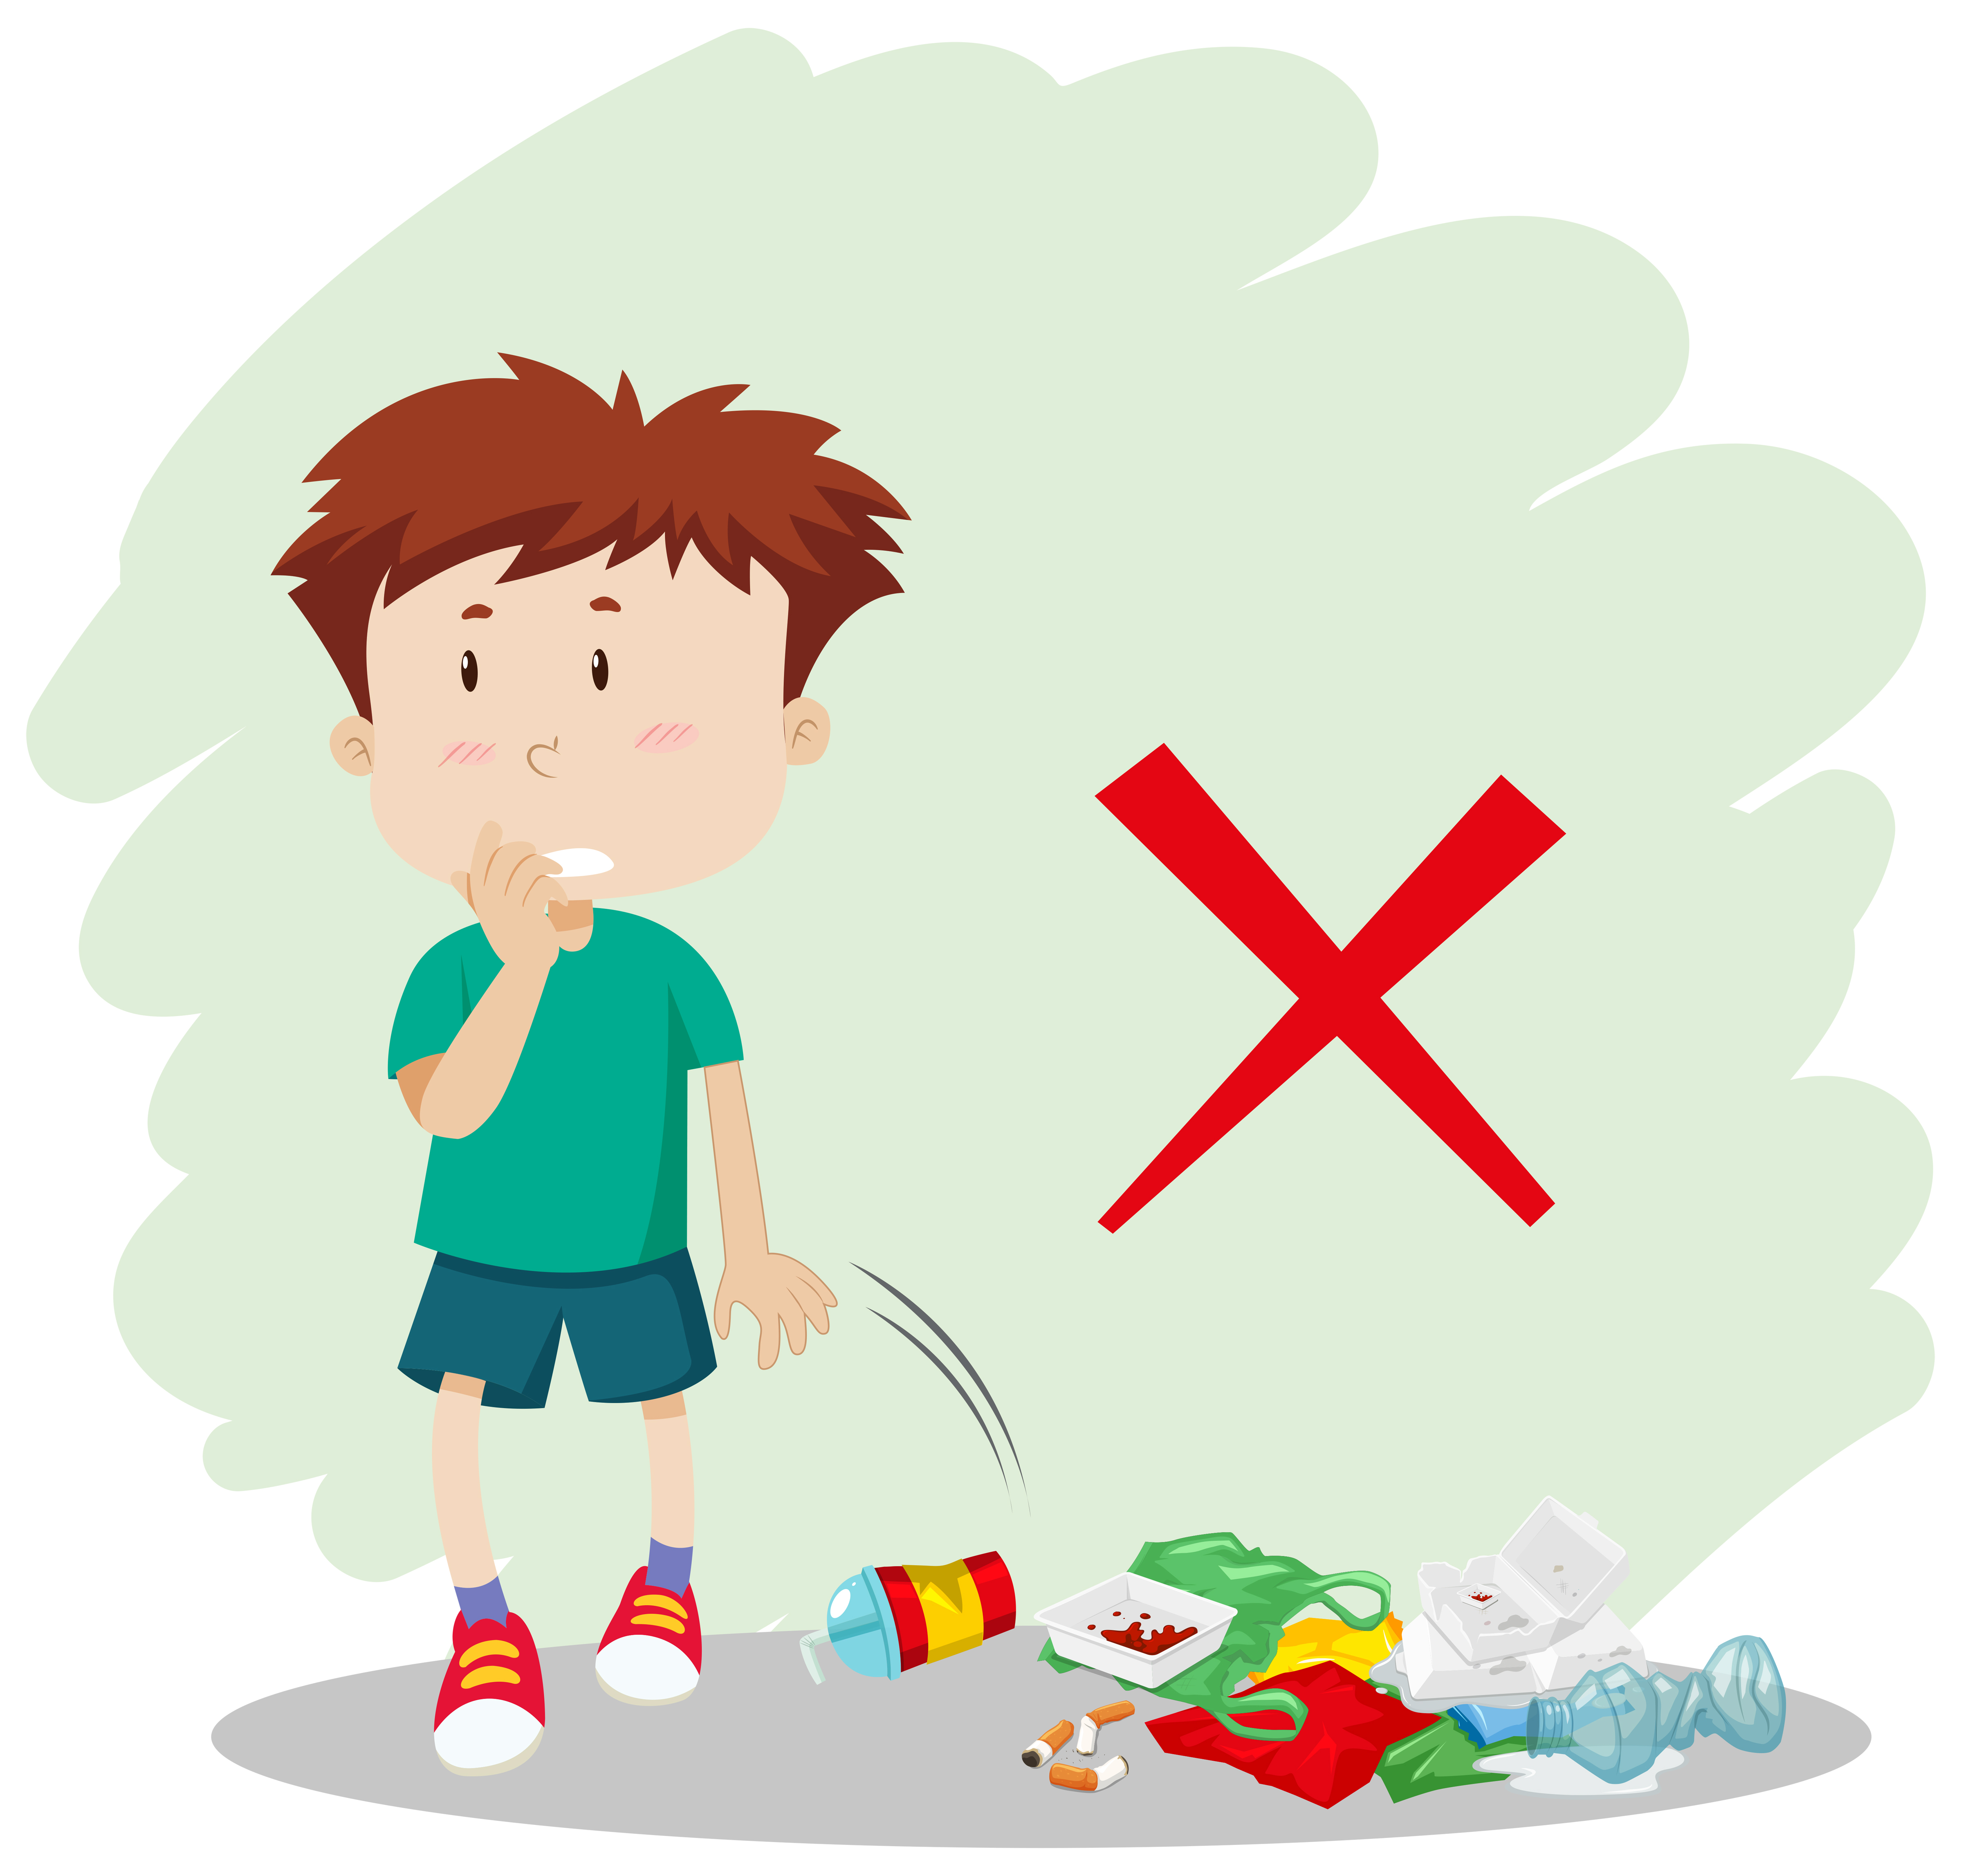 Kid gathering garbage and plastic waste for recycling.vector and  illustration.: Royalty-free vector graphics